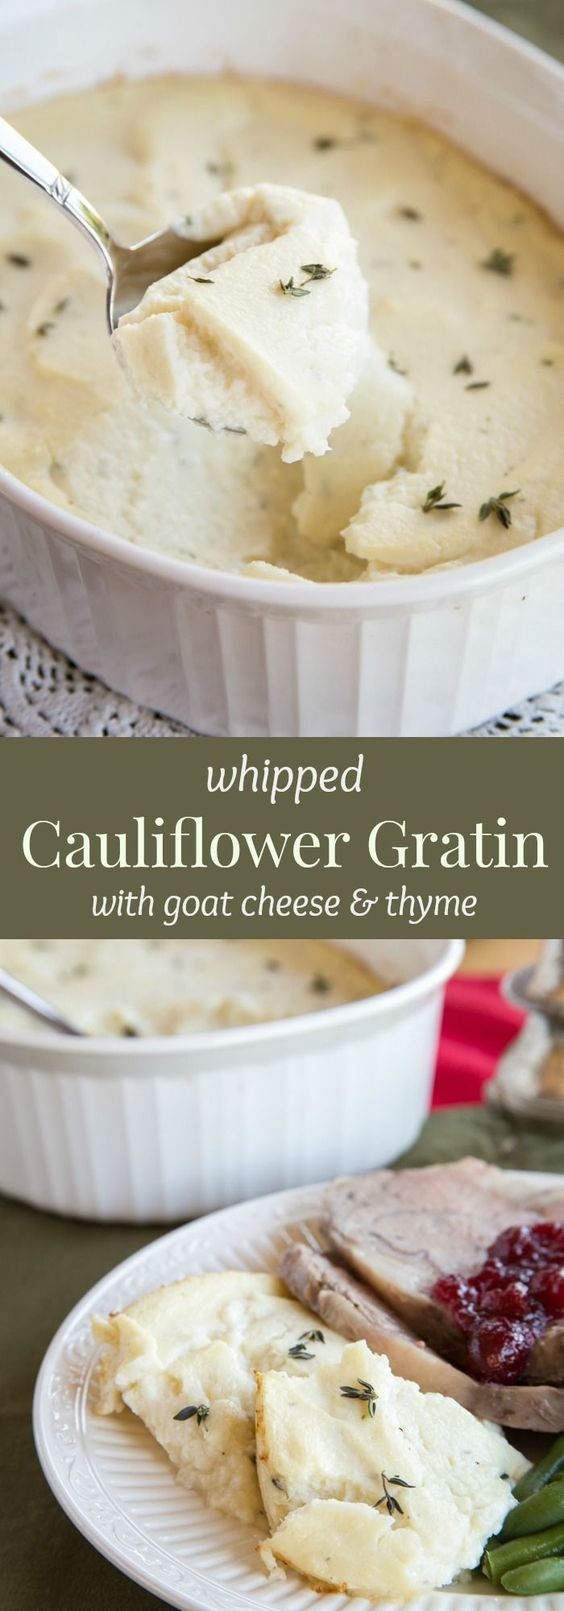 Whipped Cauliflower Gratin with Goat Cheese and Thyme - a light and ...